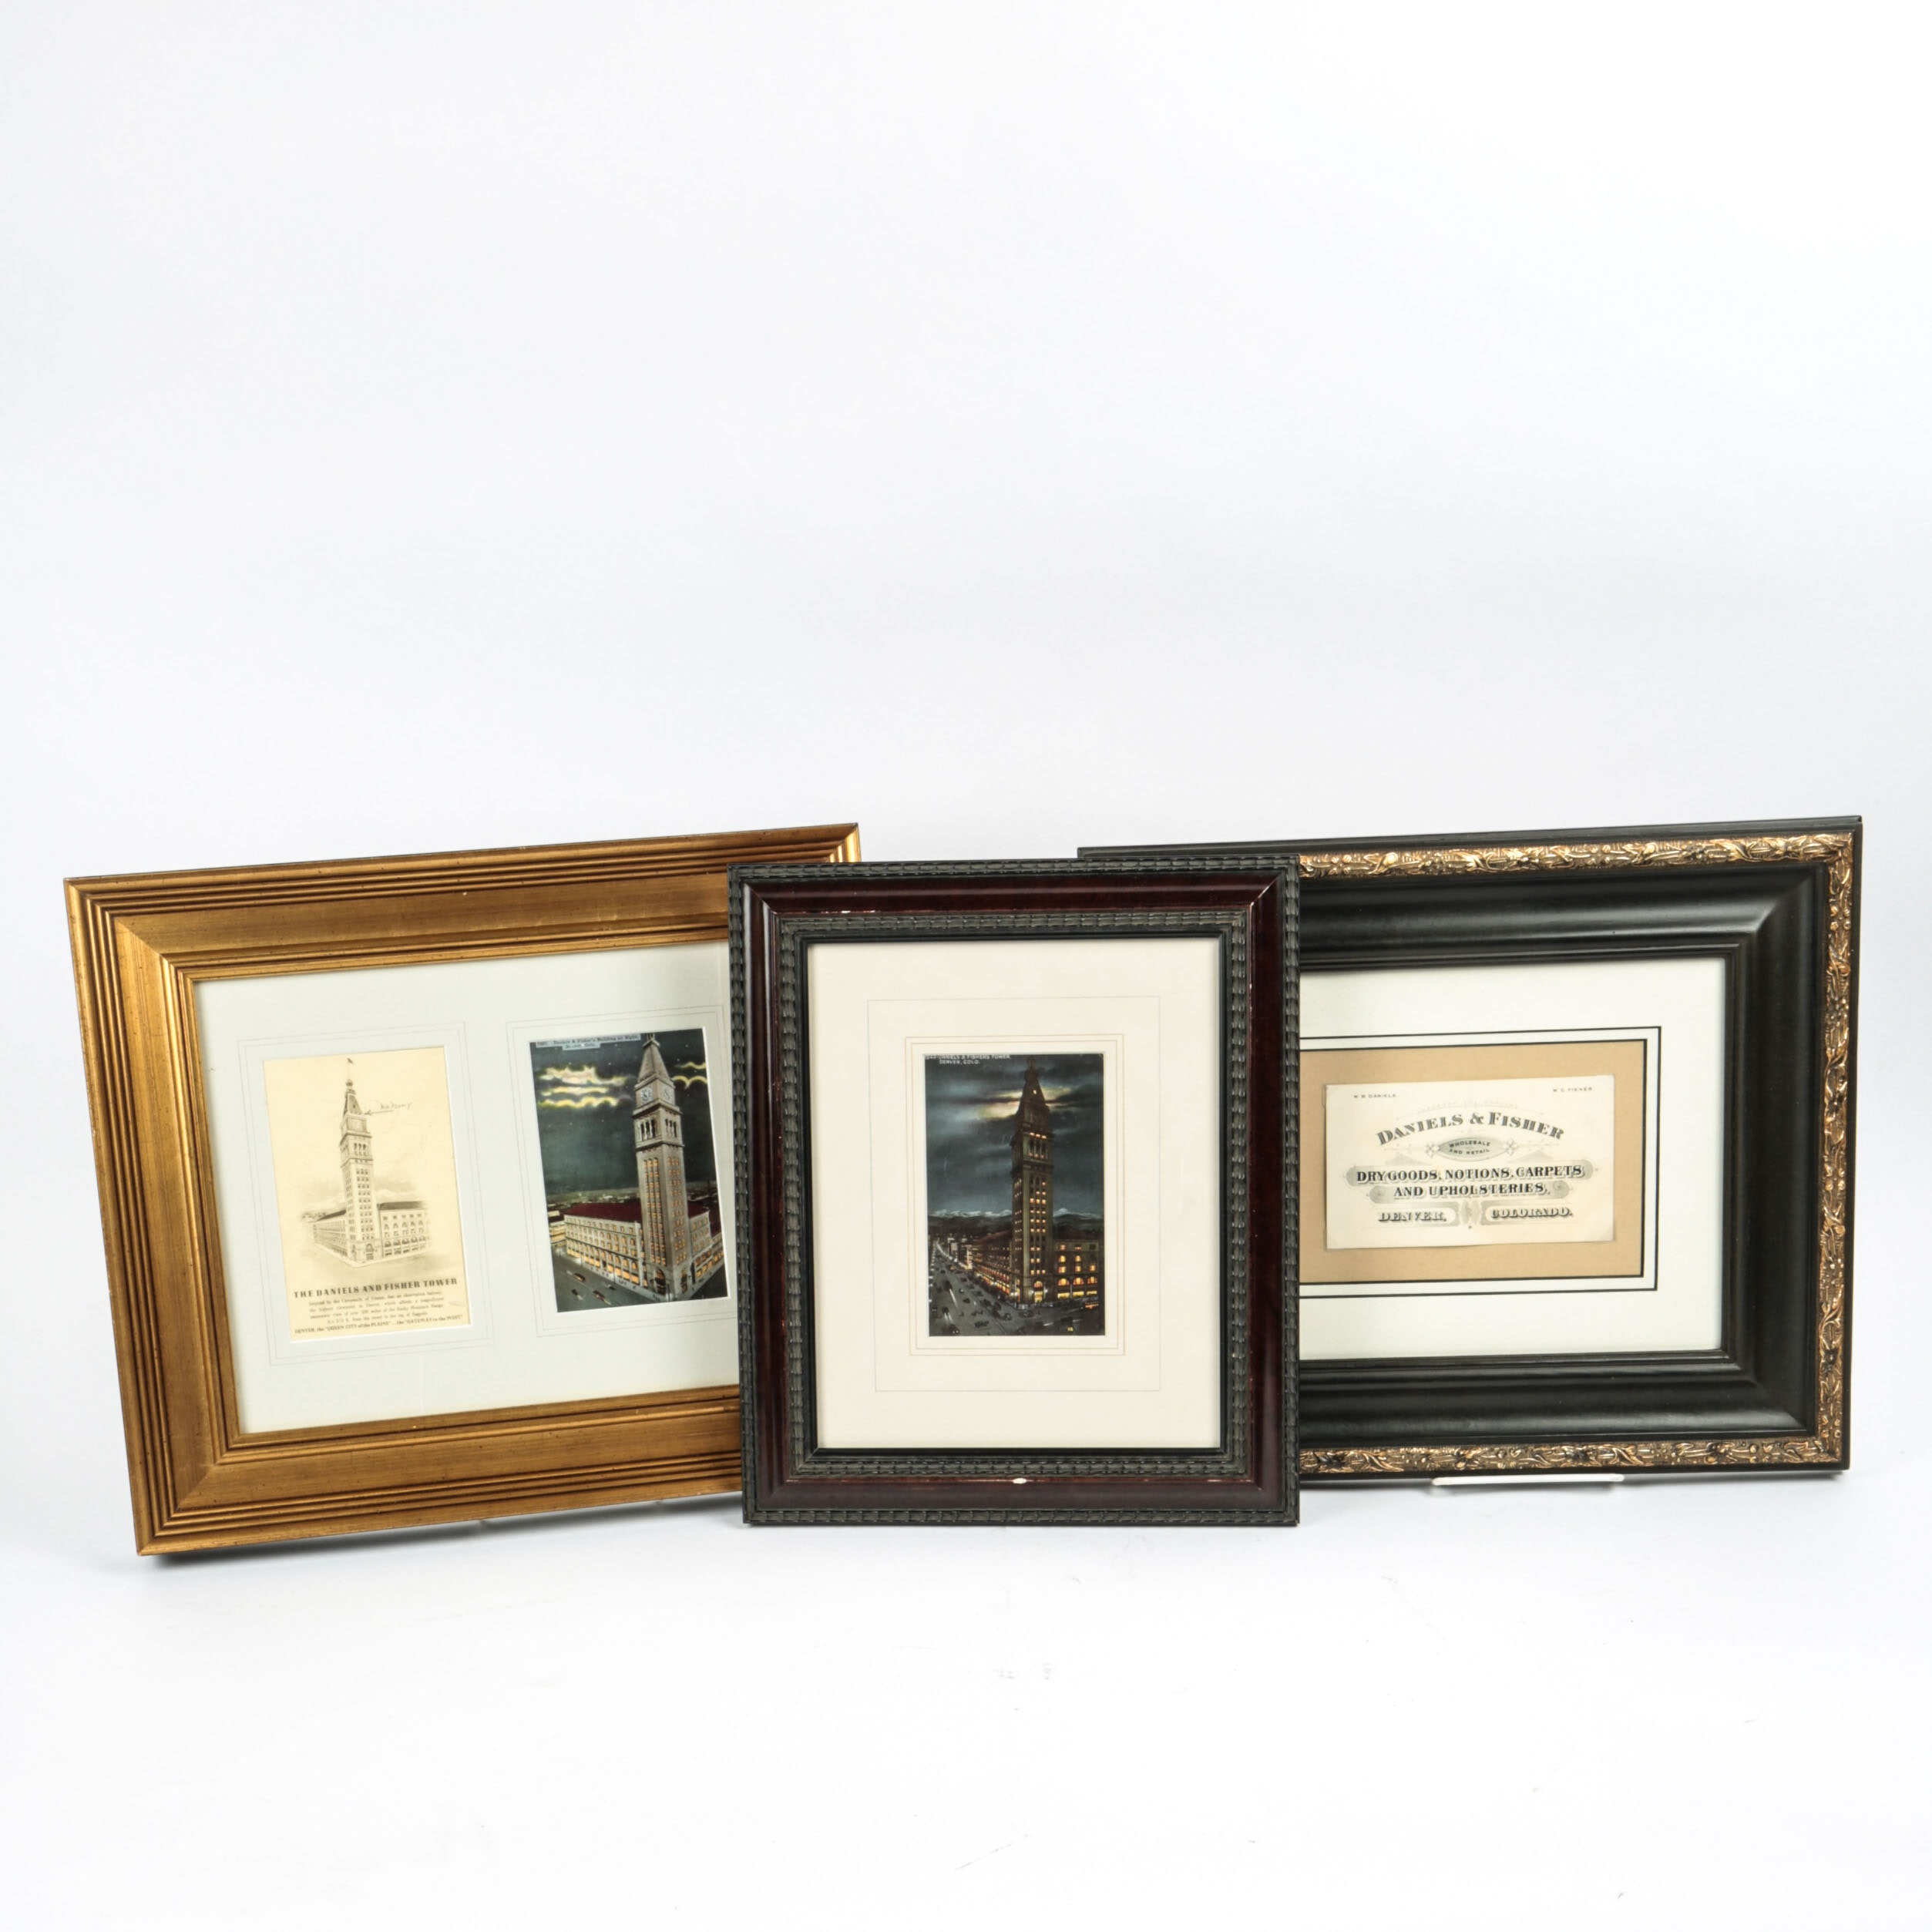 Collection of Prints Depicting the Daniels & Fisher Tower in Denver